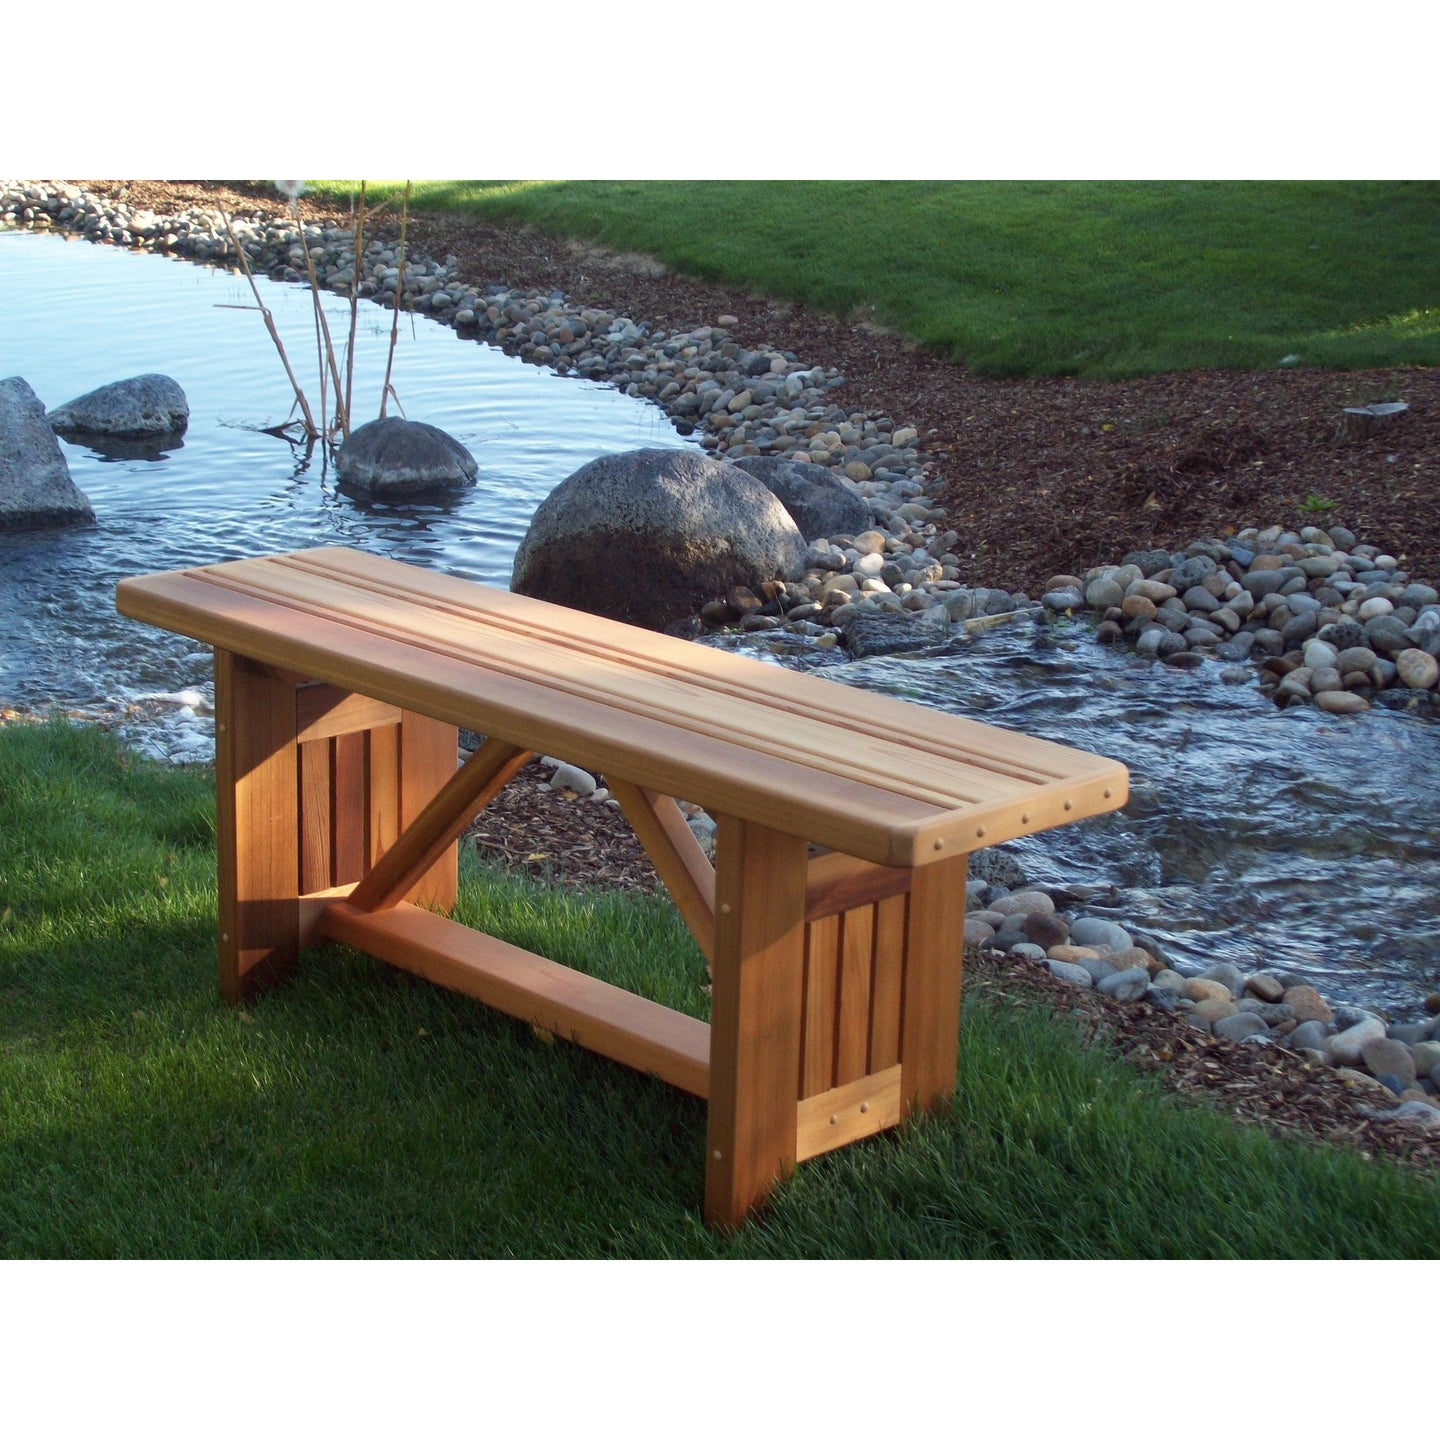 Cedar Wood Cabbage Hill 4 feet Flat Bench 48